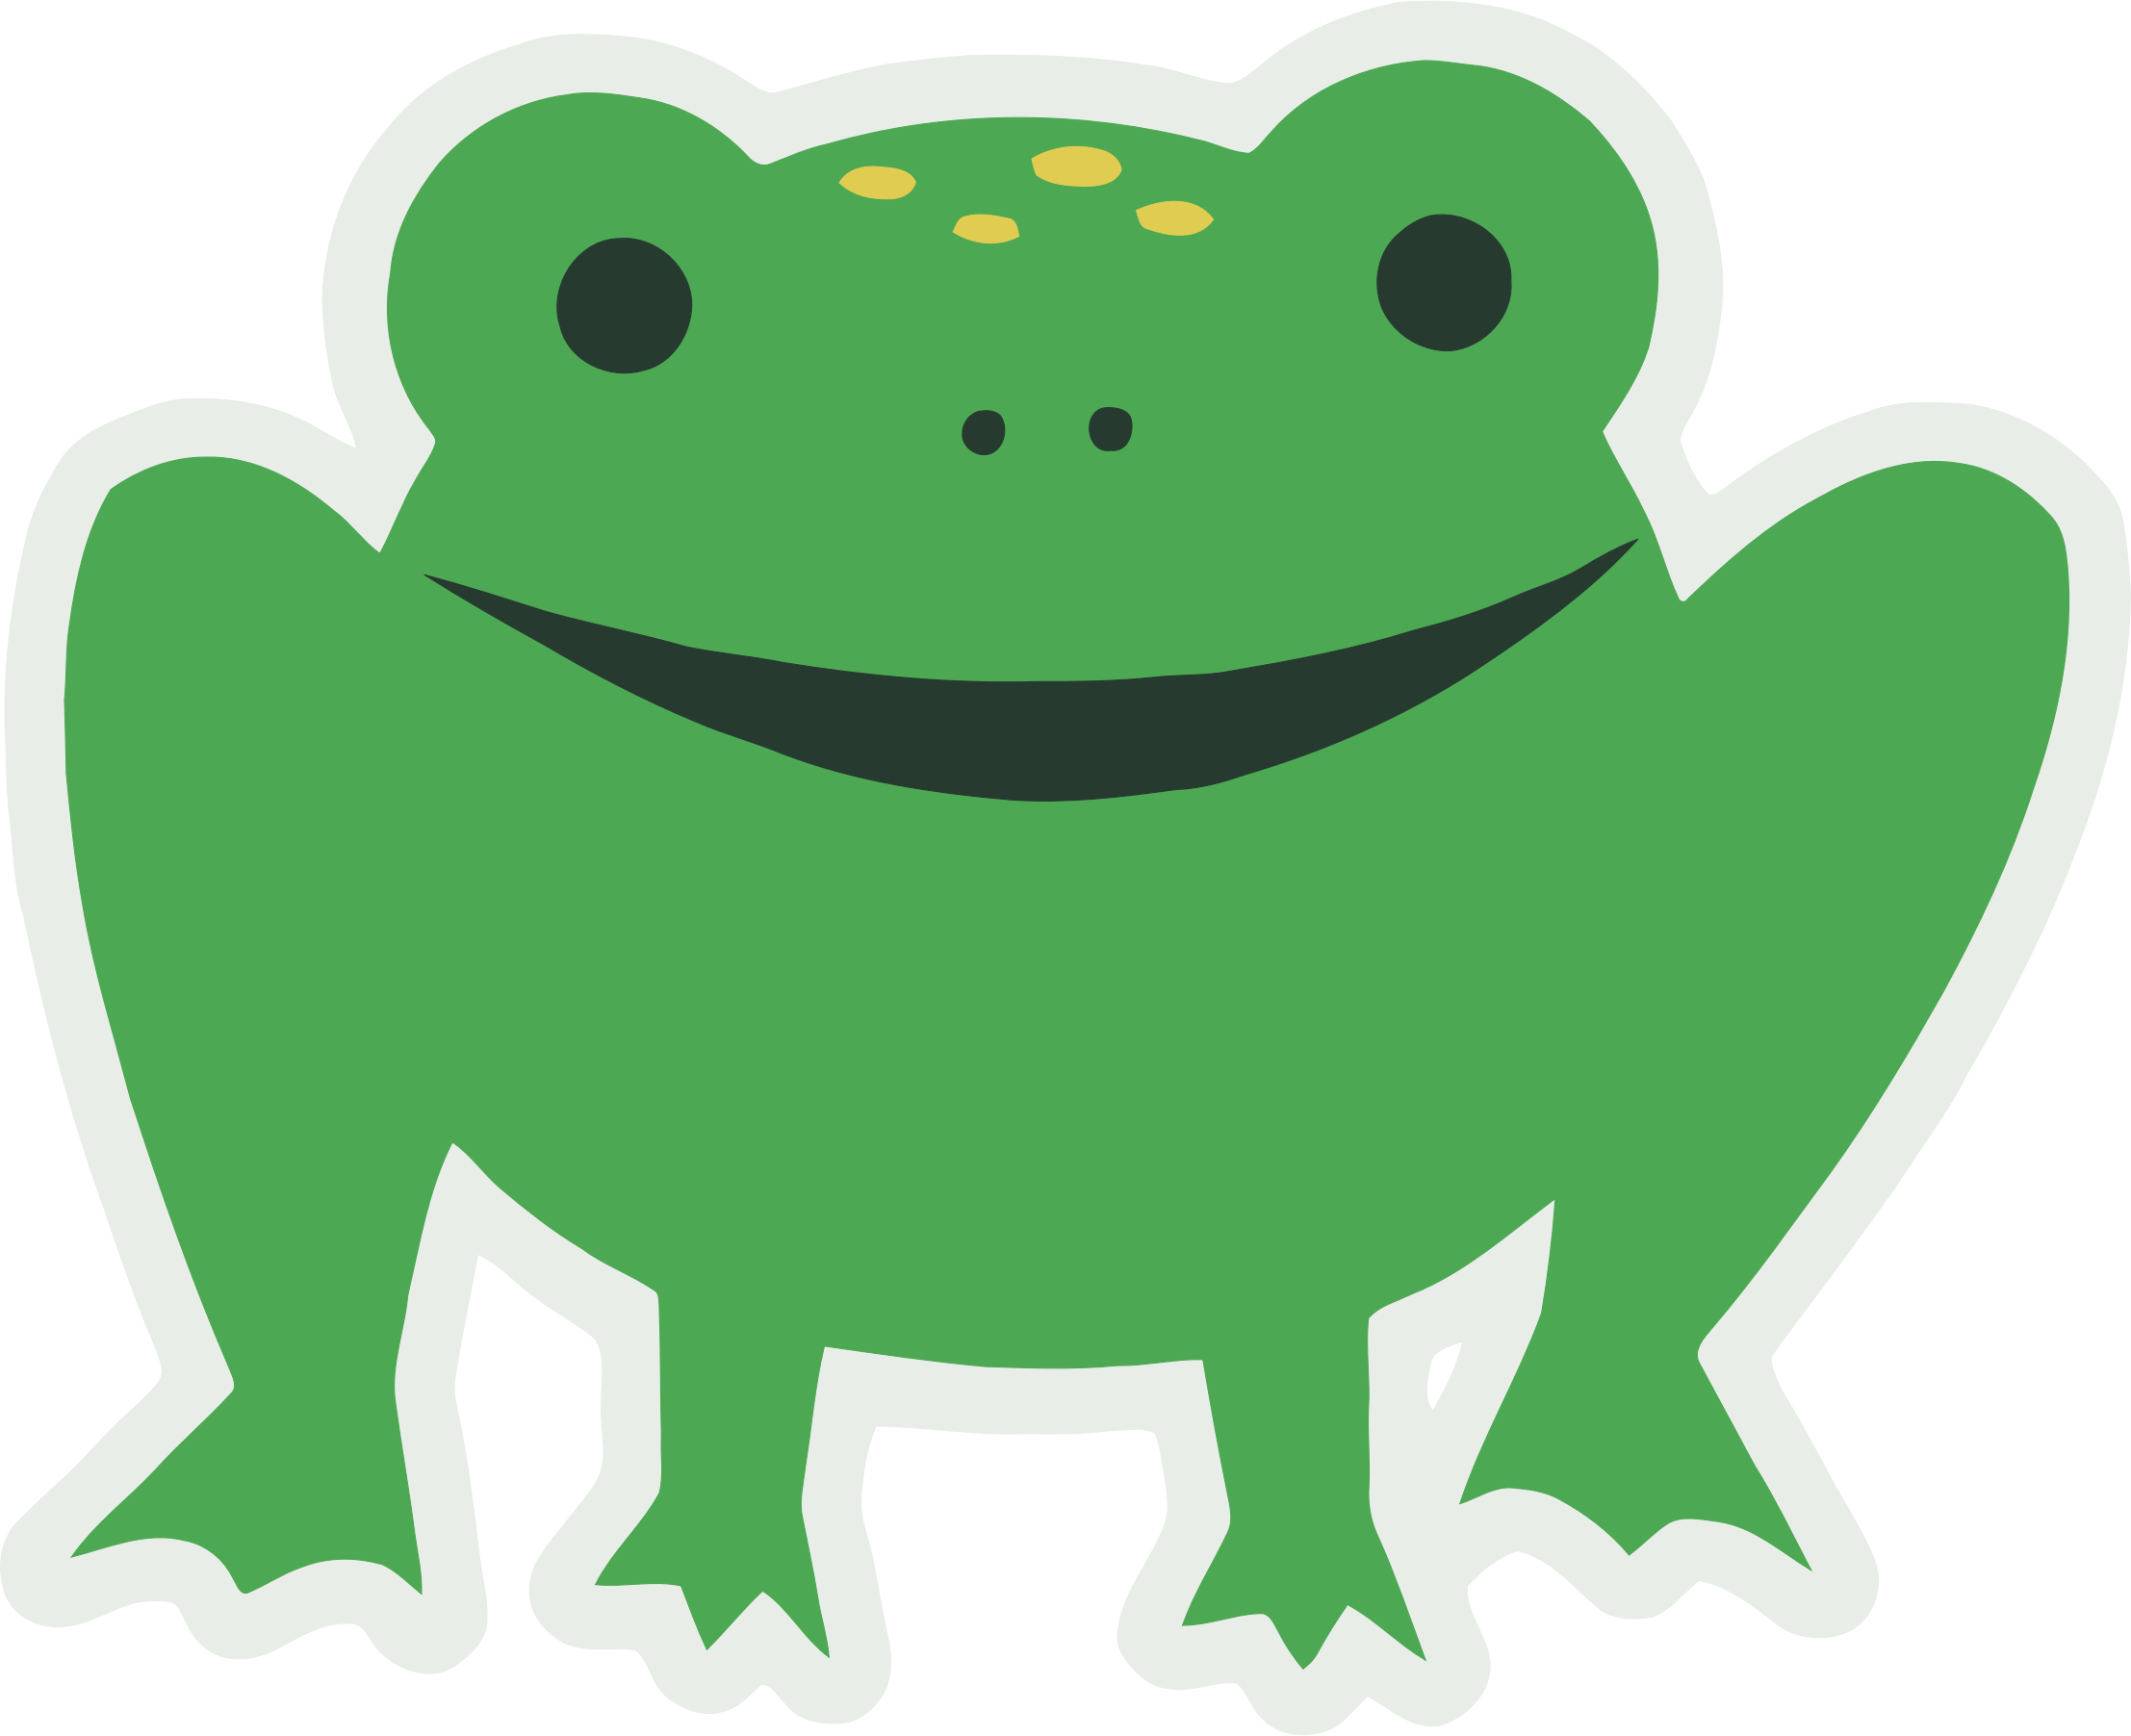 Cartoony Frog by GDJ